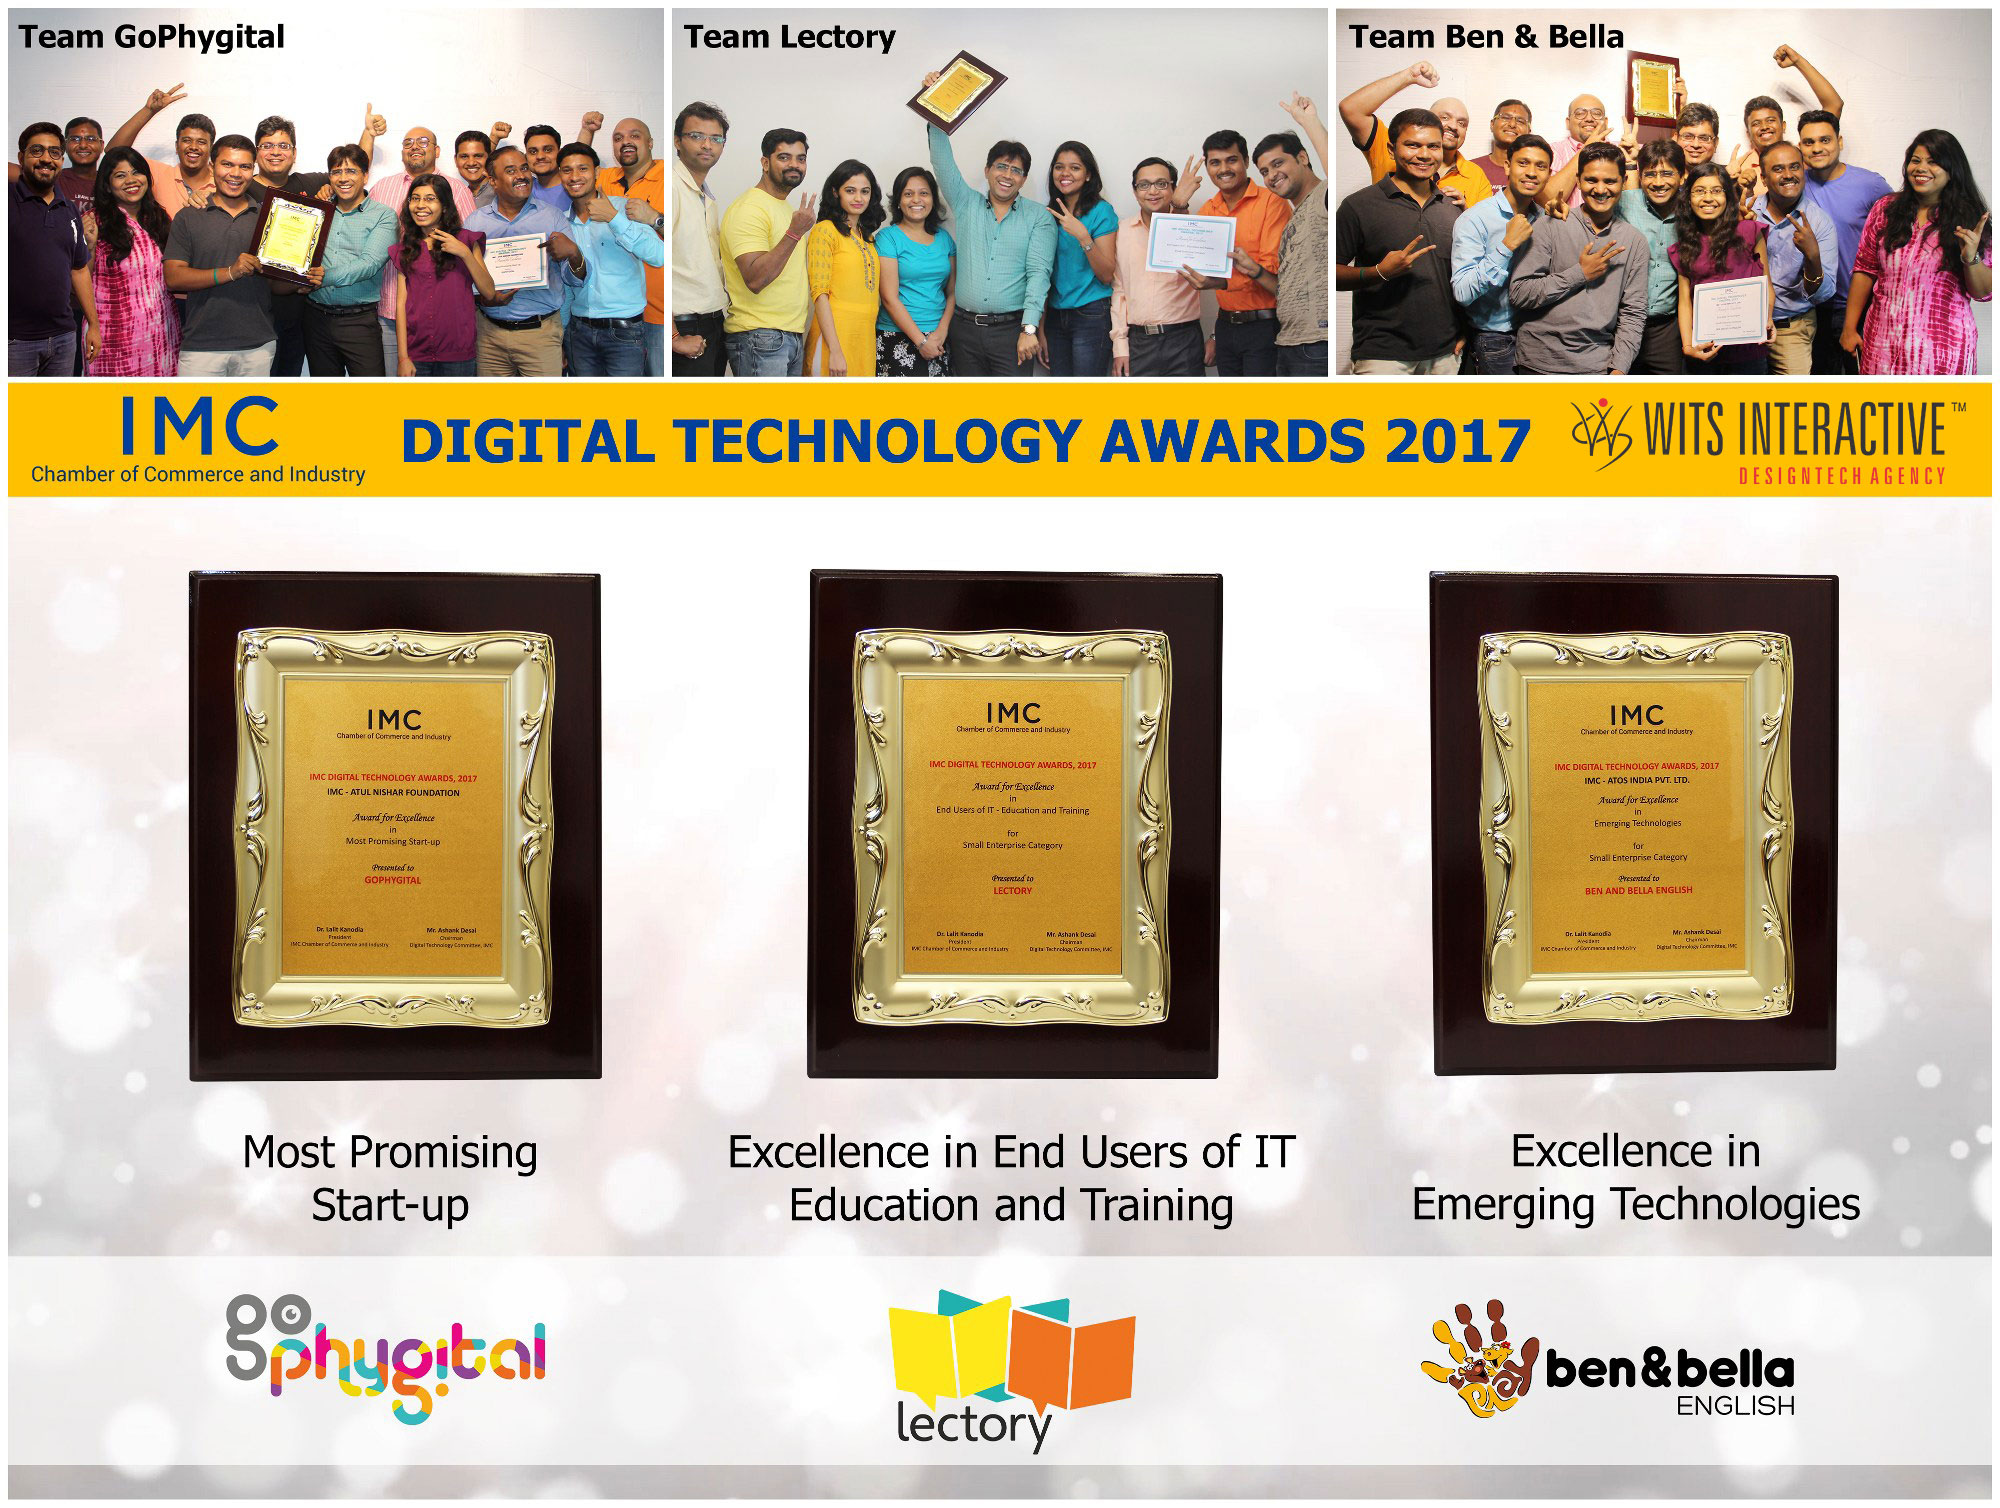 IMC Digital Technology Award 2017